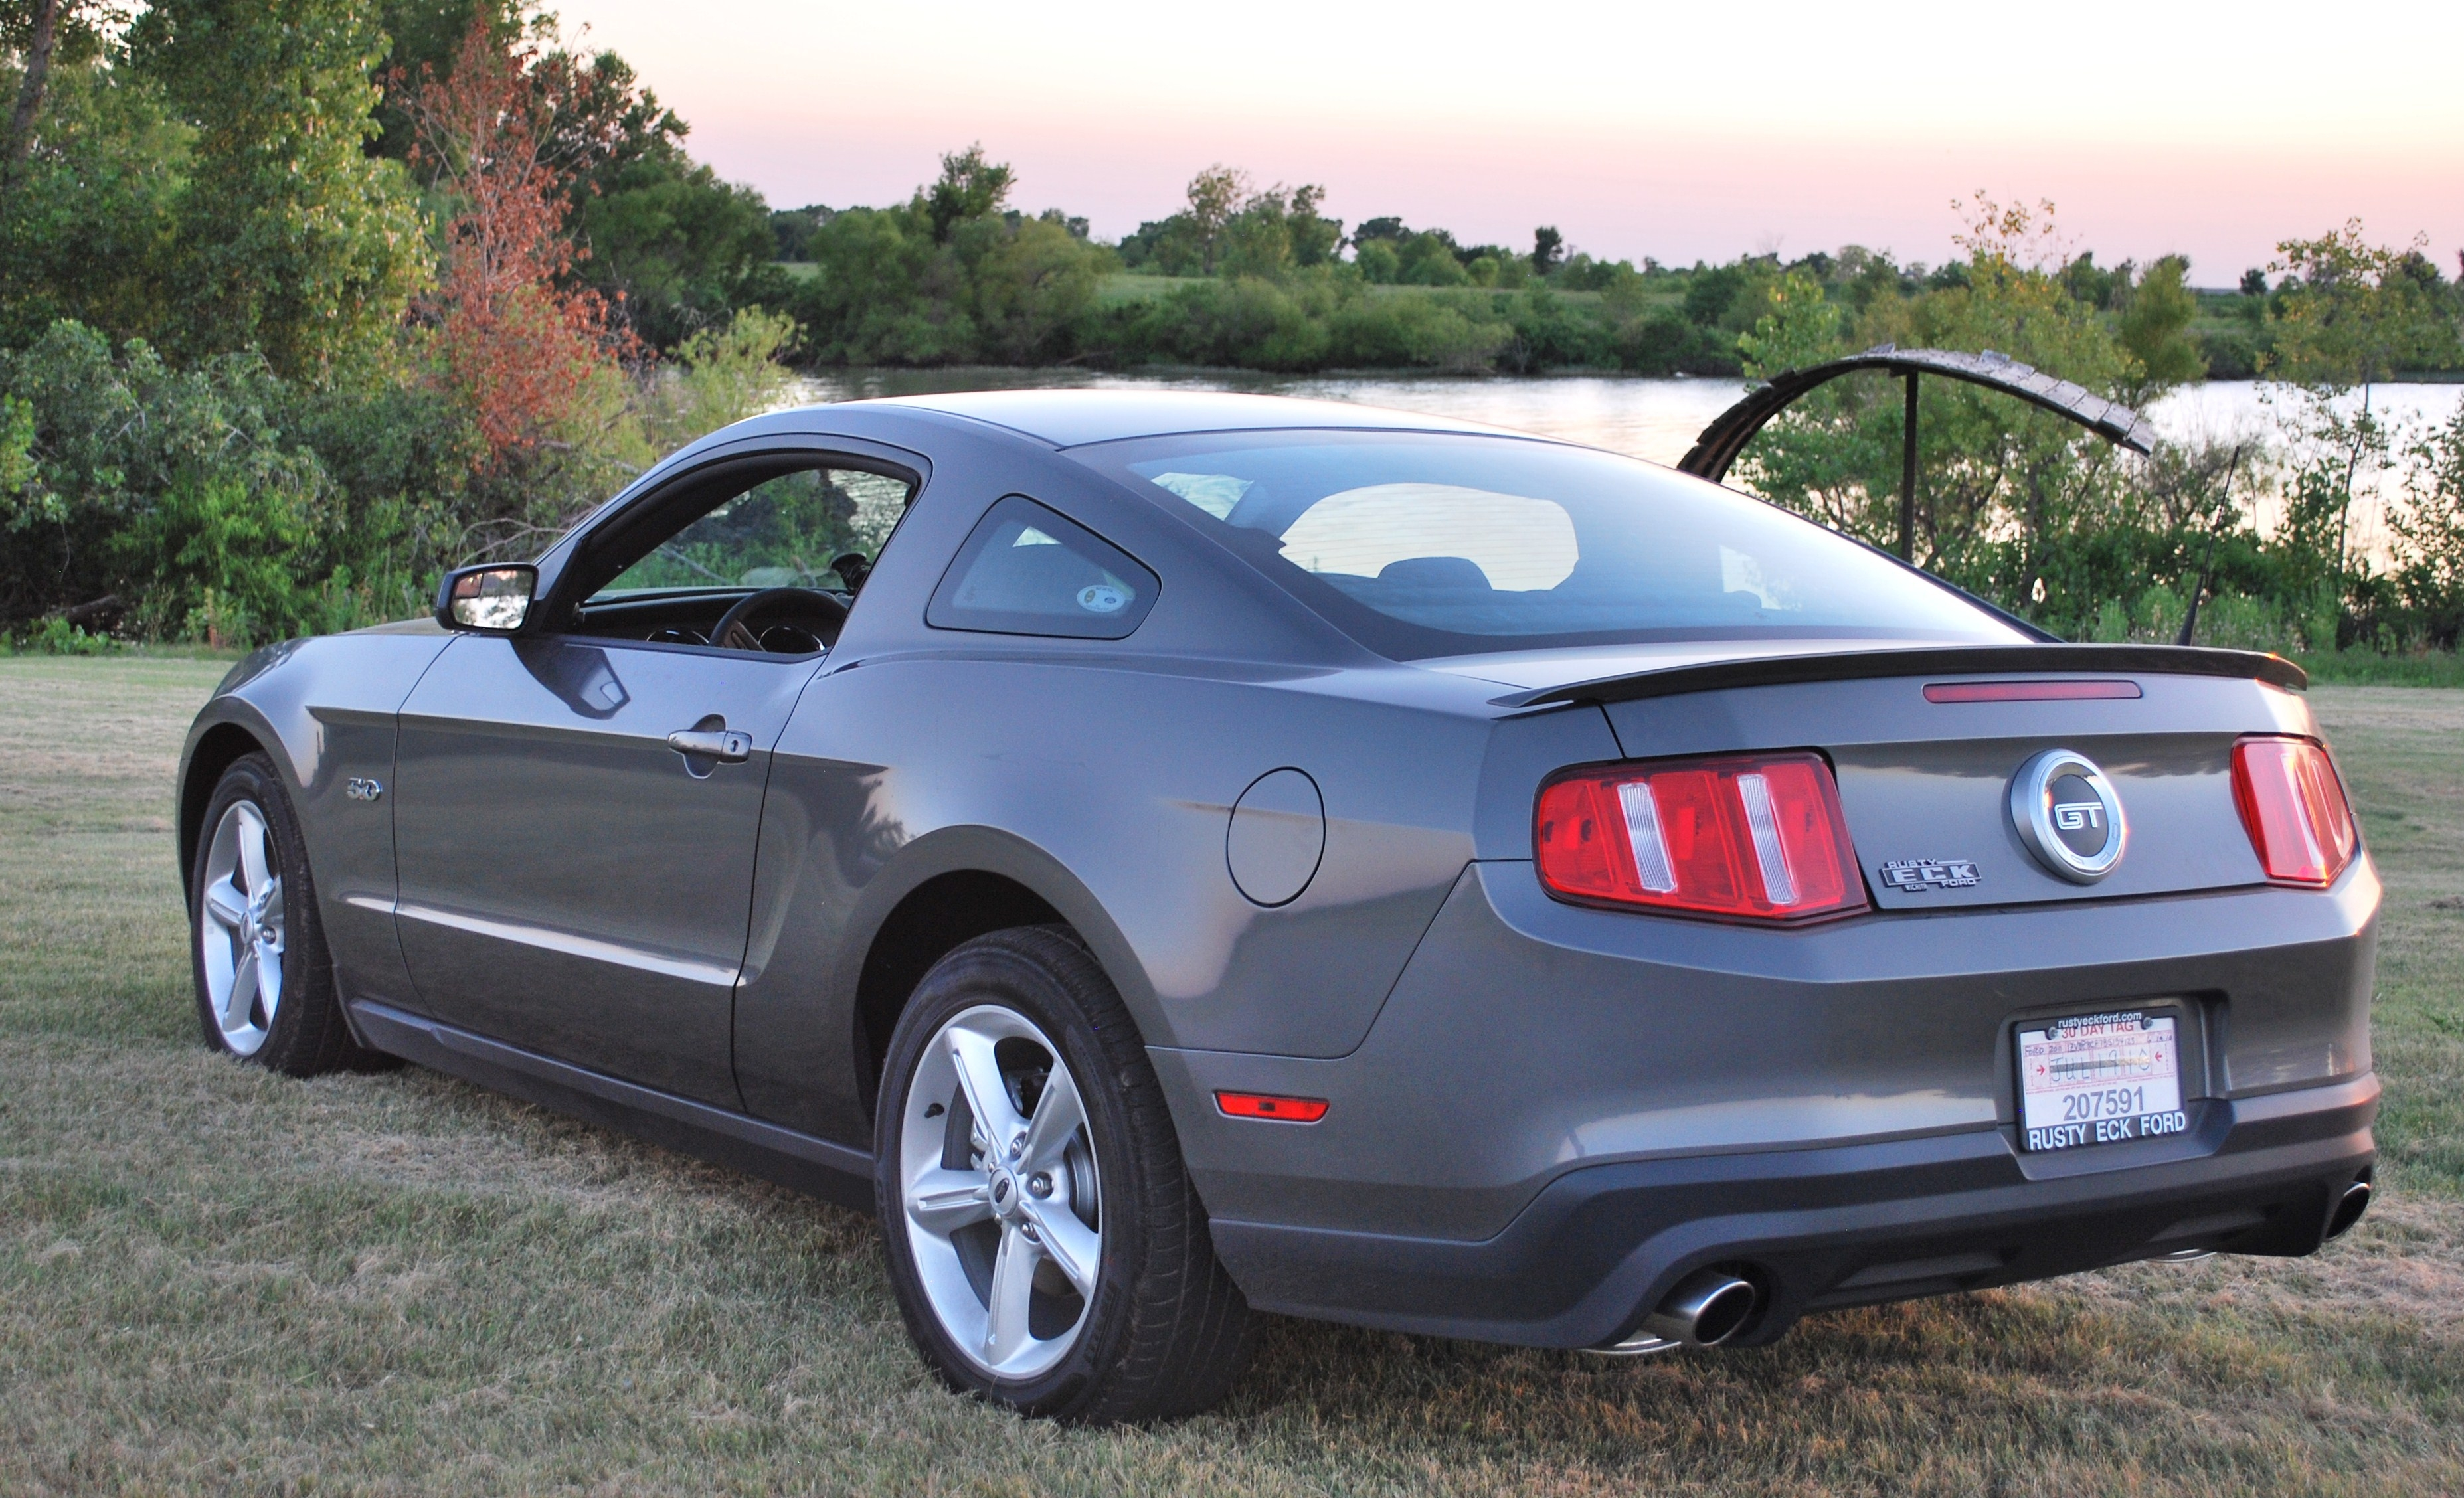 luillo69 2011 Ford Mustang 14580129